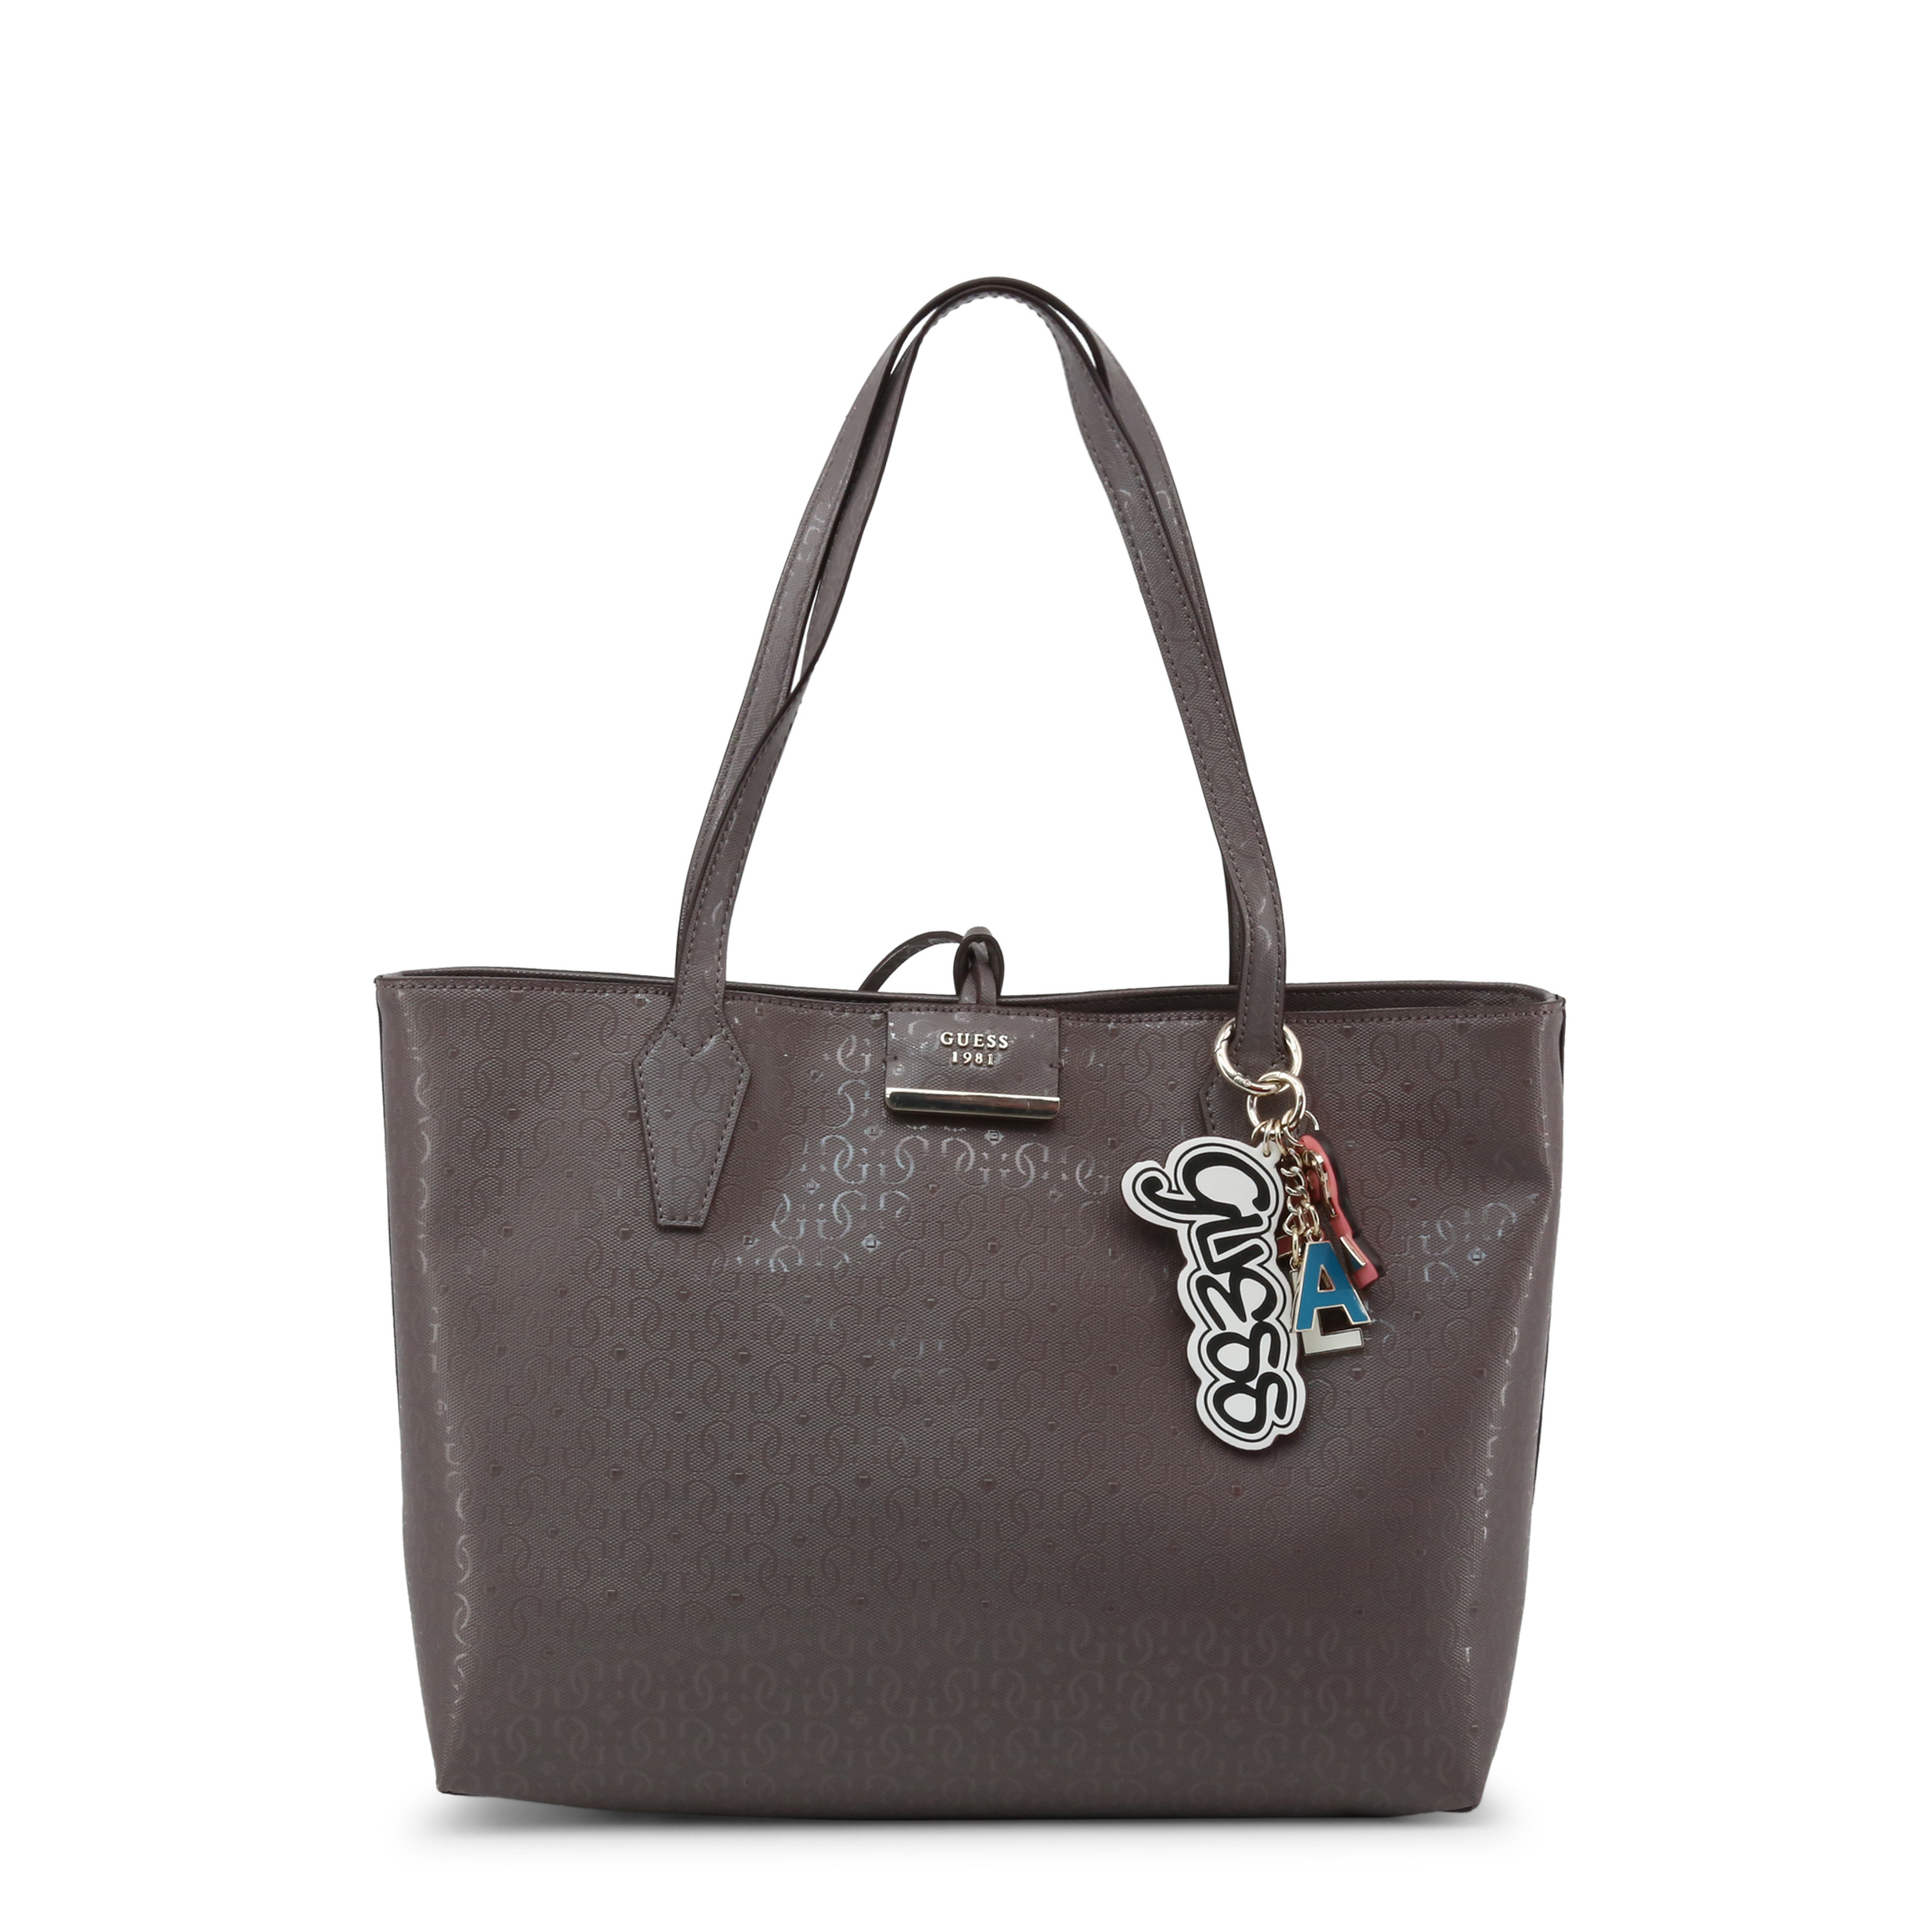 Shopping bag Guess HWSG71_81150 Donna Grigio 101391